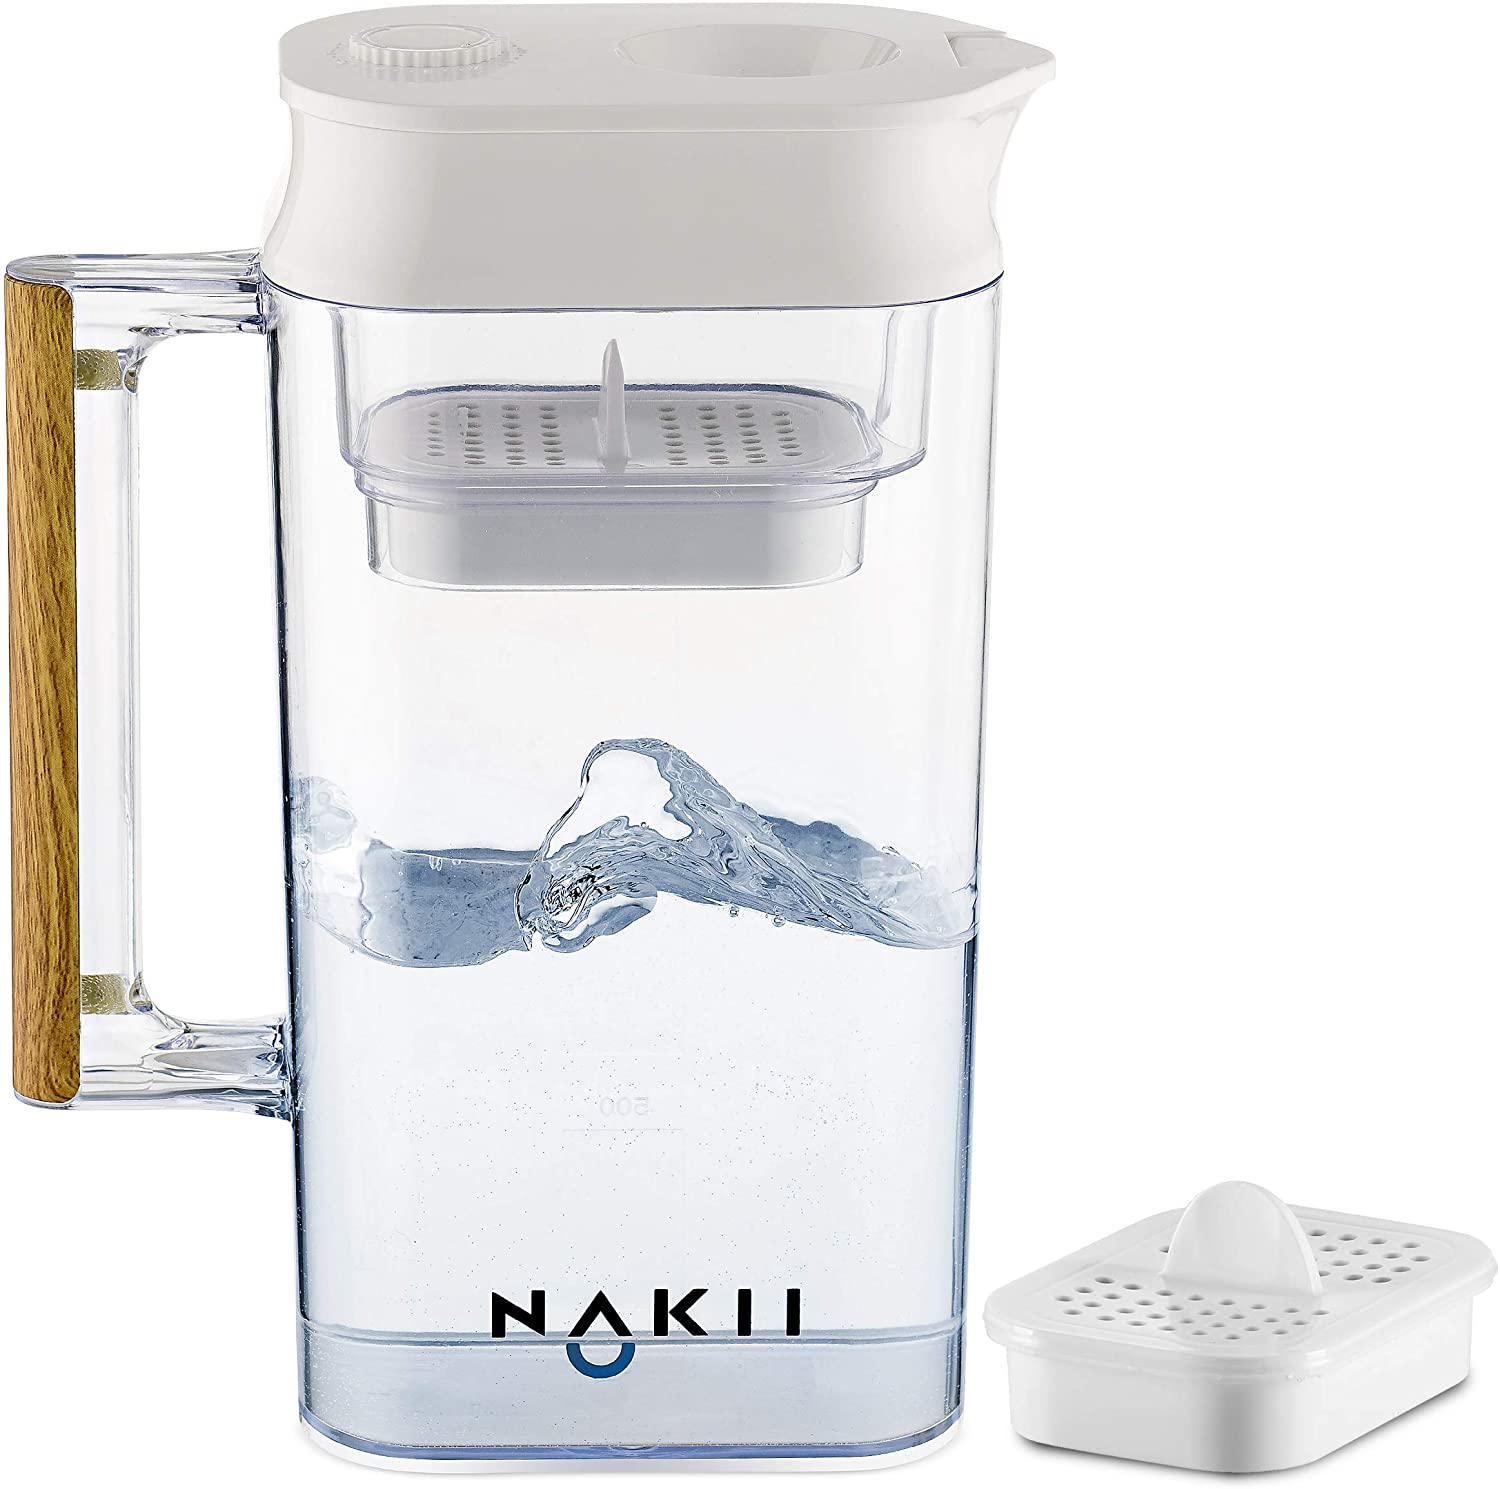 Nakii Water Filter Pitcher - Long Lasting (150 Gallons) | Supreme Fast Filtration and Purification Technology | Removes Chlorine, Metals & Sediments for Clean Tasting Drinking Water | WQA Certified: Kitchen & Dining